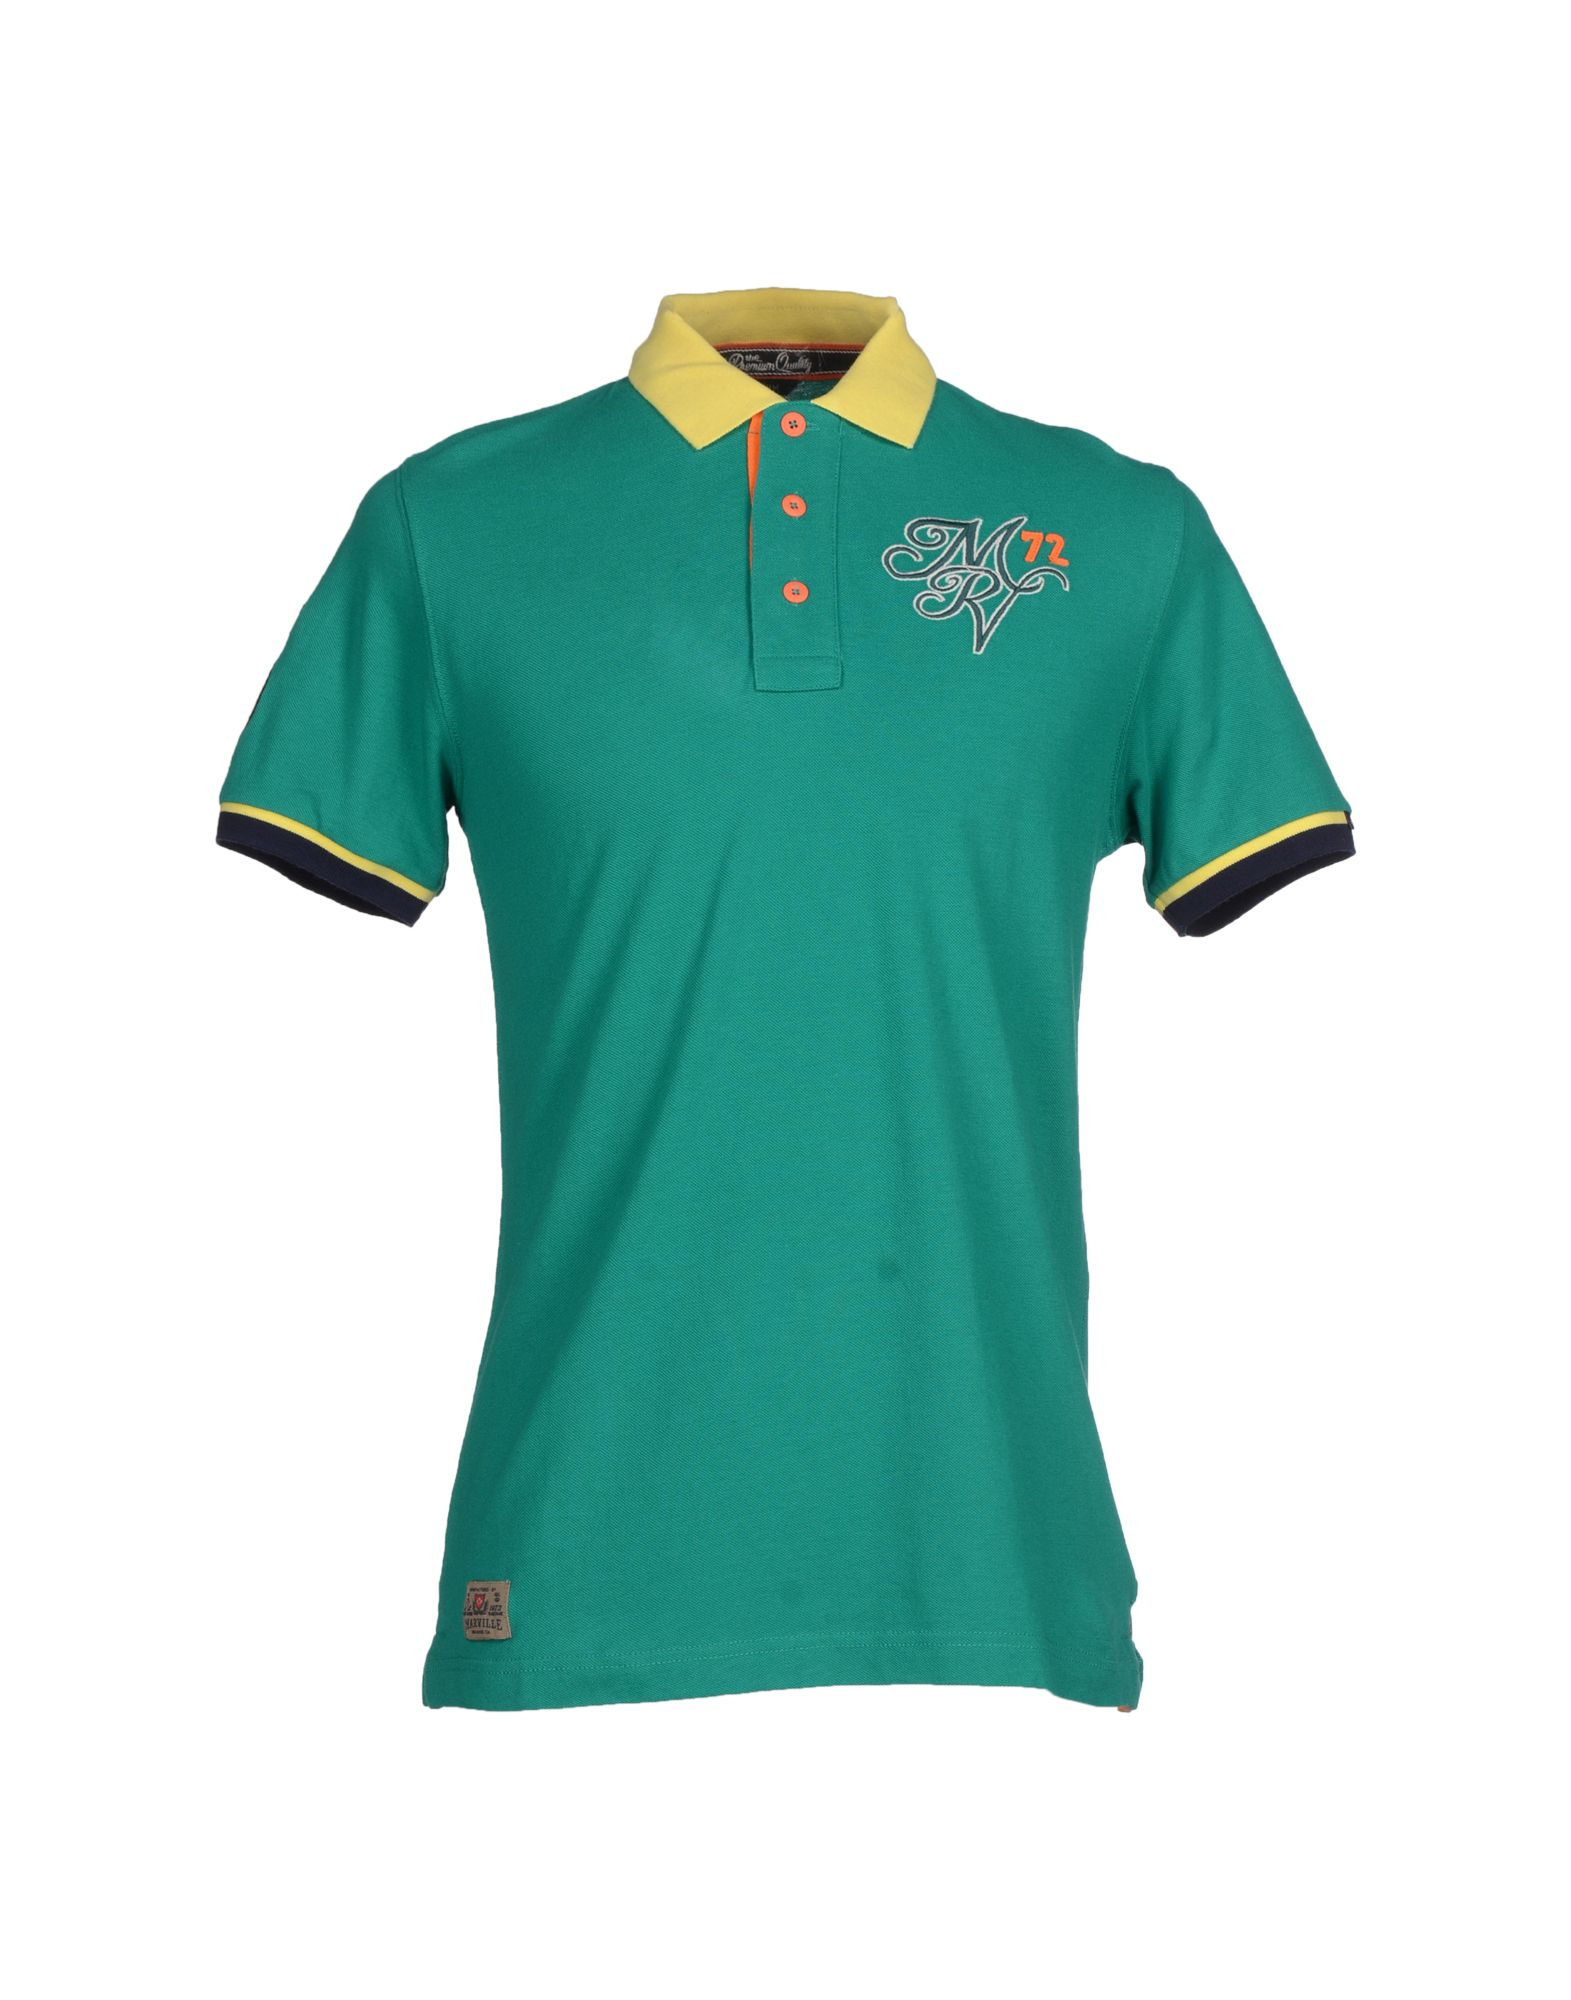 Marville polo shirt in green for men lyst Emerald green mens dress shirt